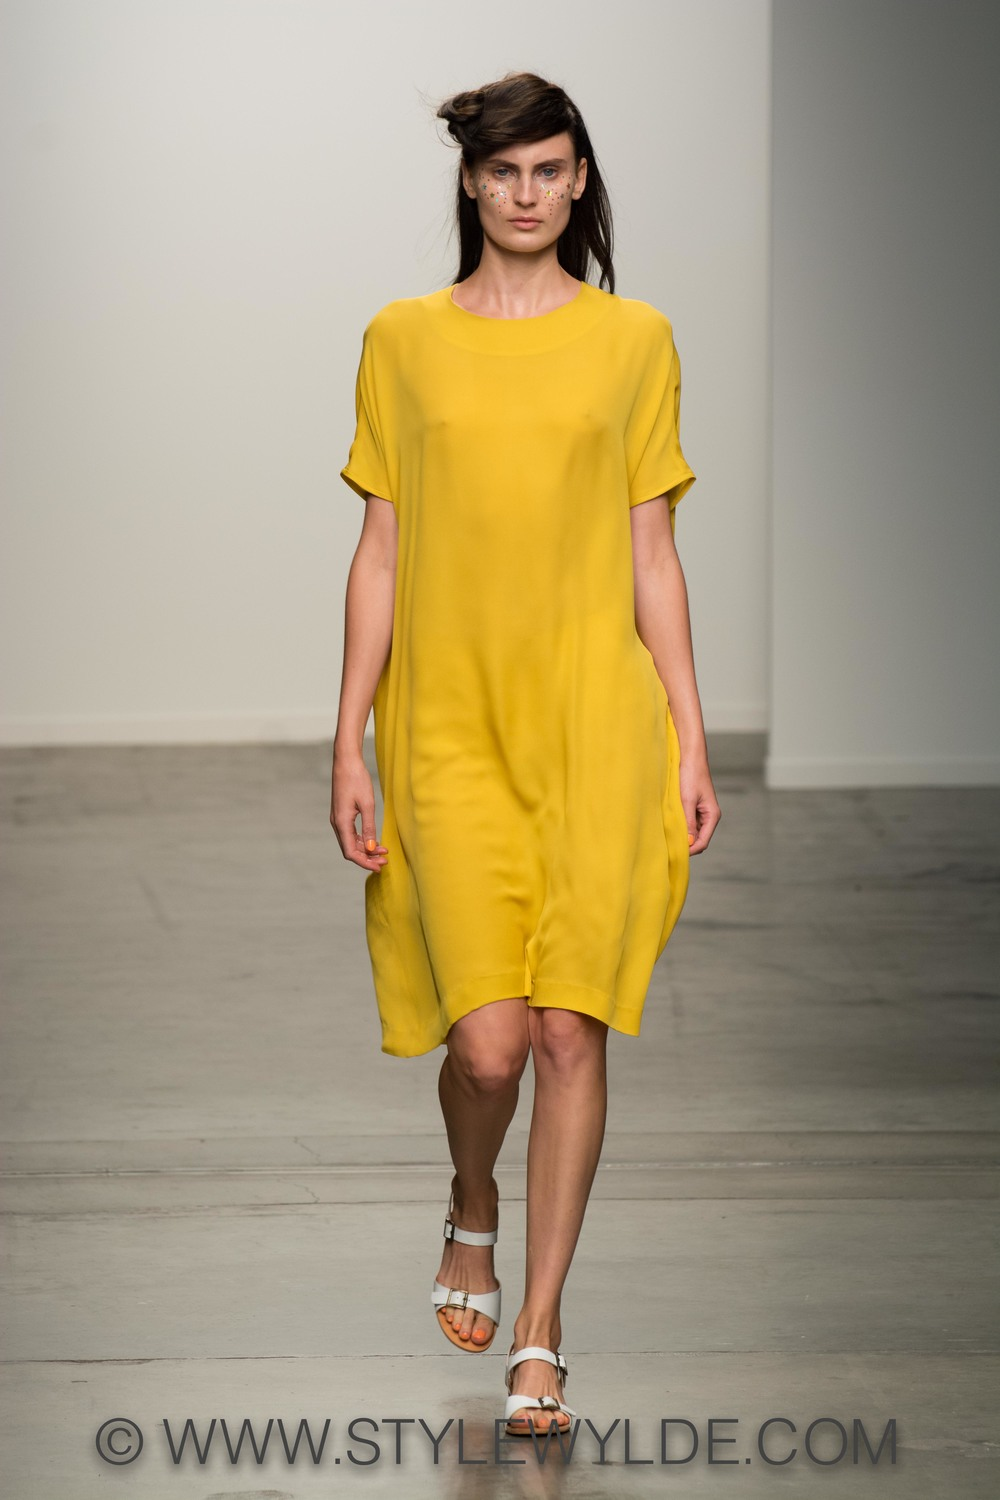 StyleWylde_adetacher_FOH_SS15_sw (22 of 37).jpg